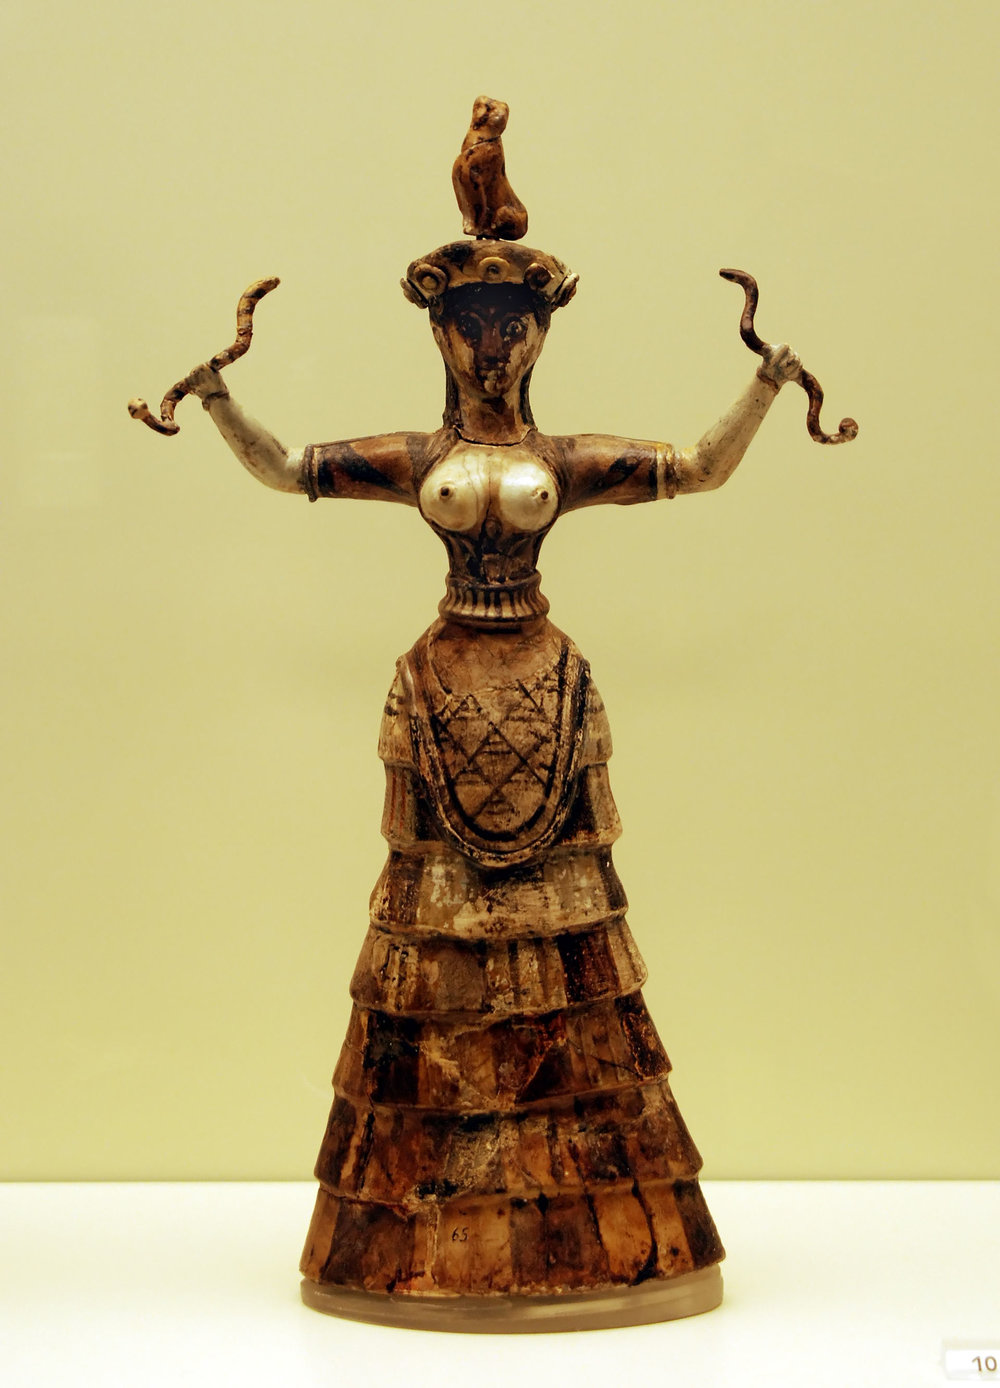 Strophion on Faience Figurine of the Snake Goddess, Ancient Crete